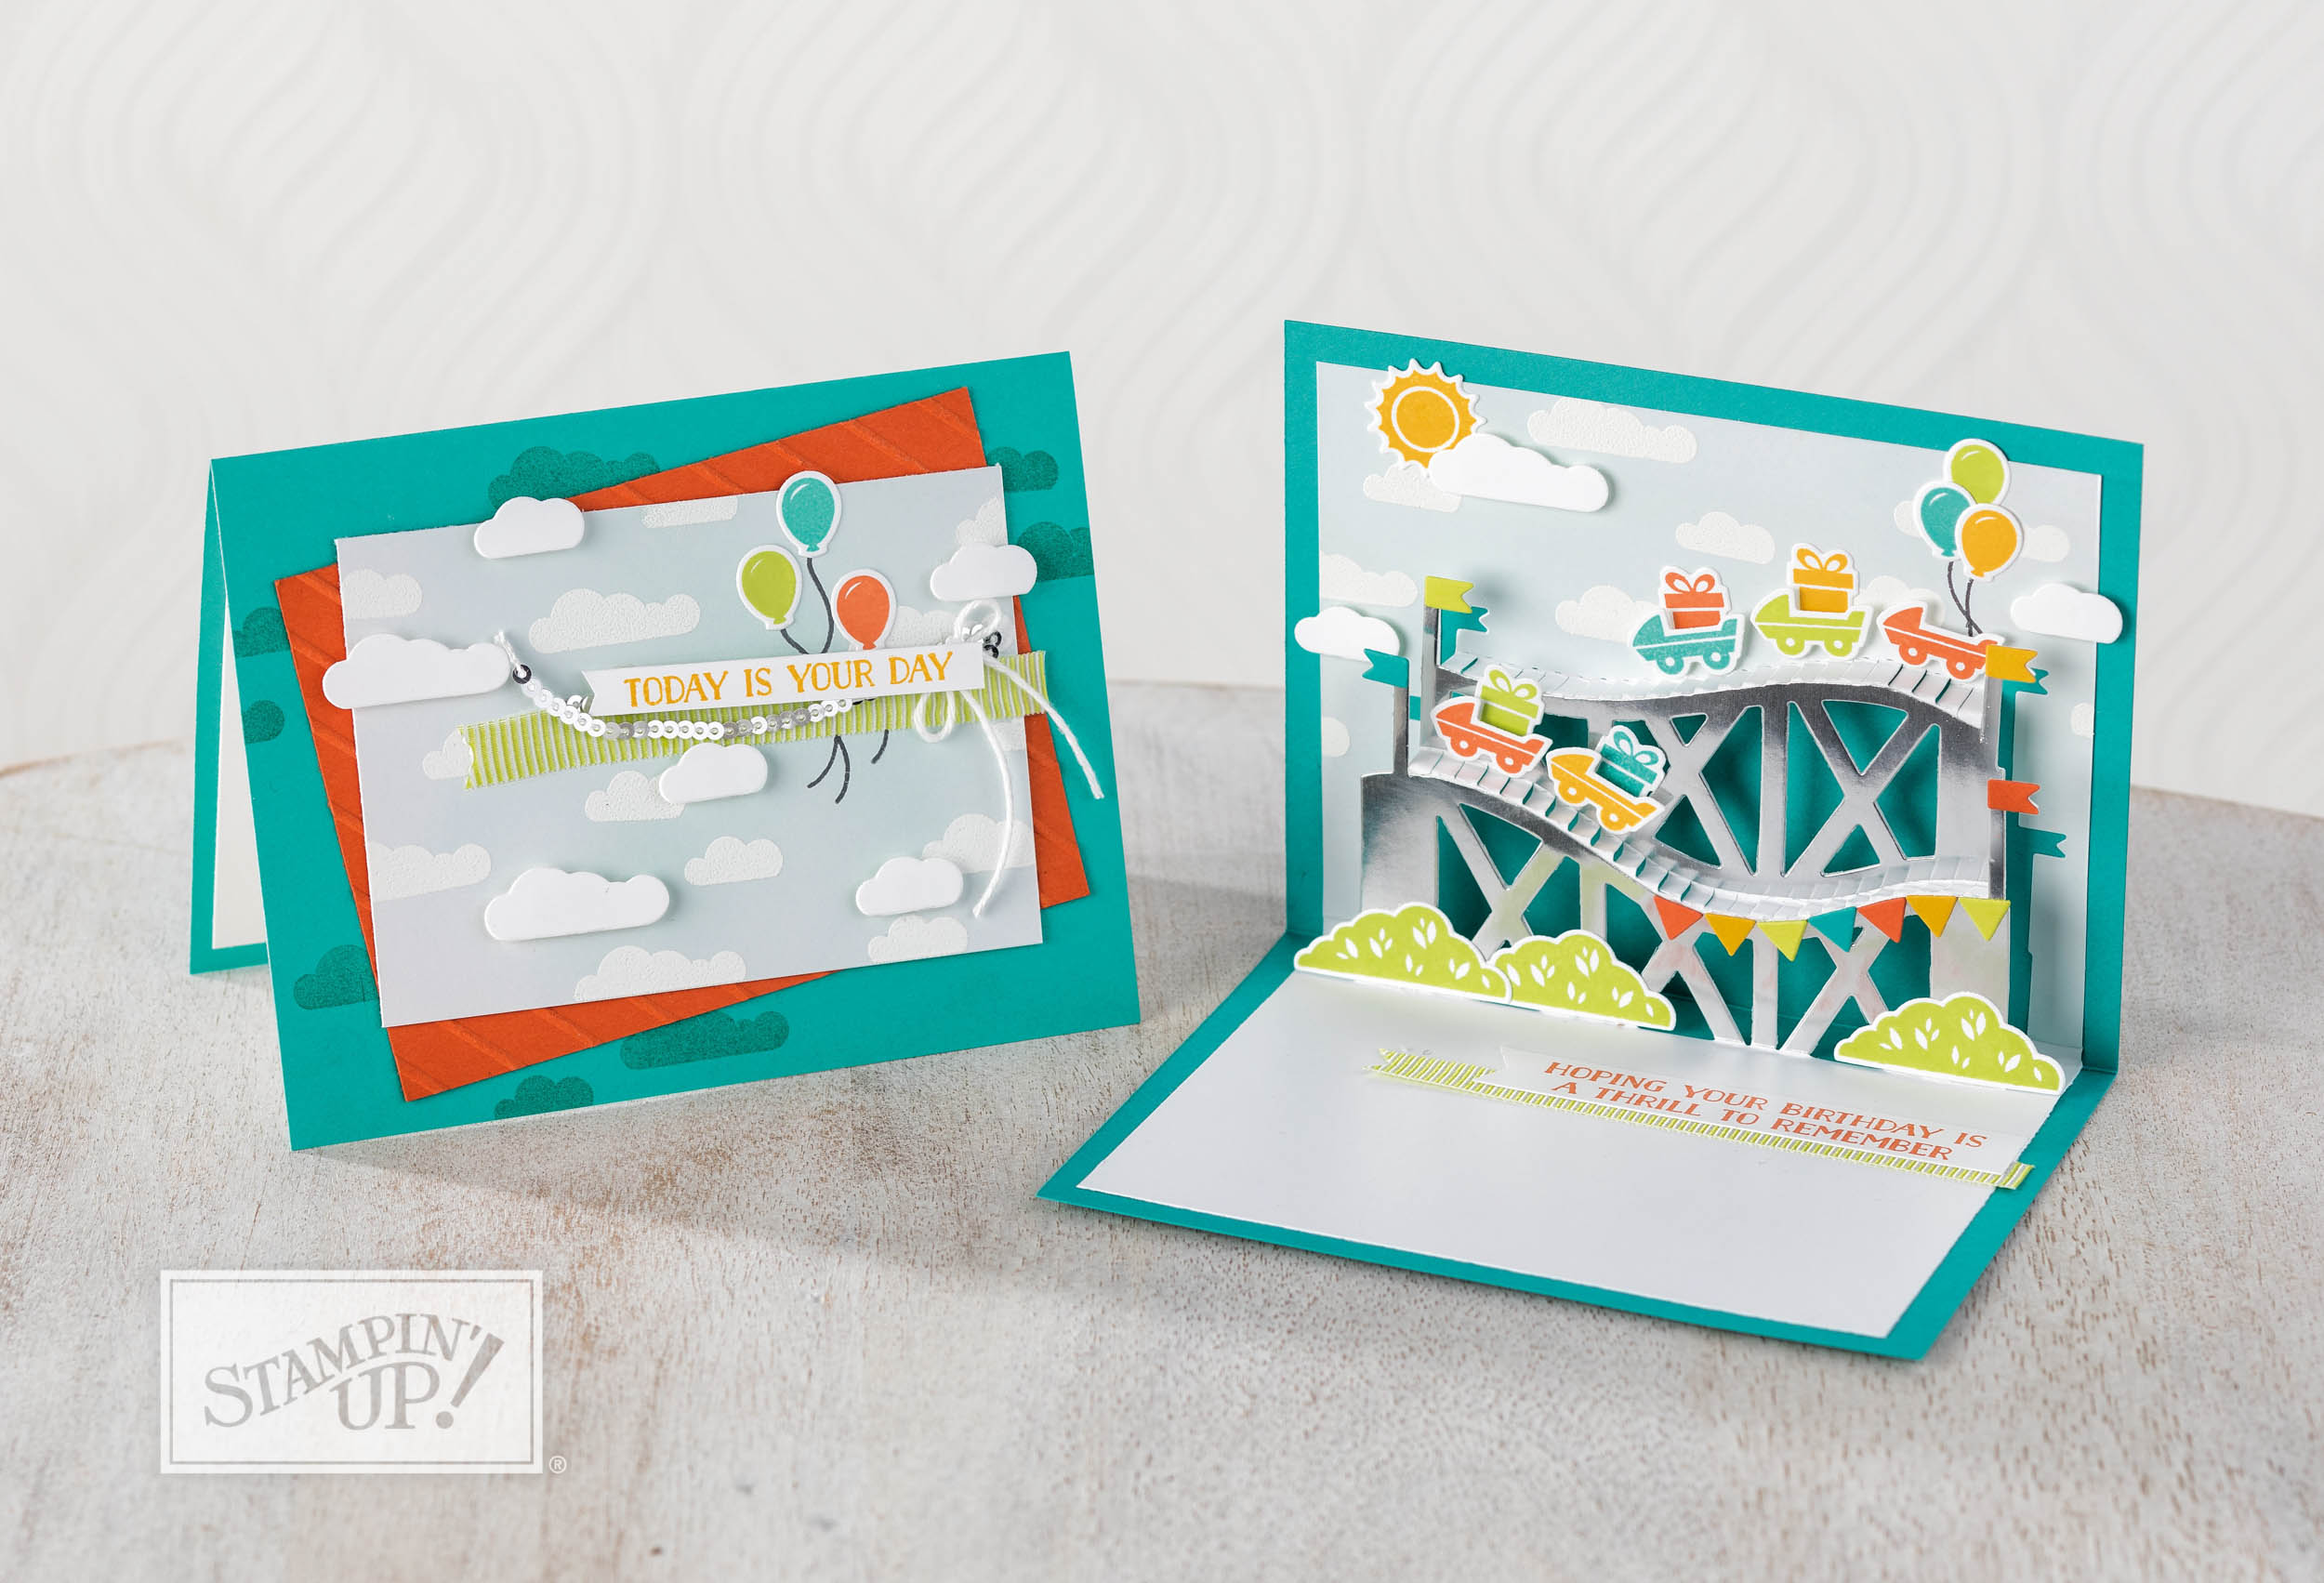 Let the Good Times Roll Bundle Video, wendy lee, stampin up, handmade, stamping, #creativeleeyours, creatively yours, creative-lee yours, Let the good times roll stamp set, 3D interactive card, #makeacardsendacard, SU, pop up card